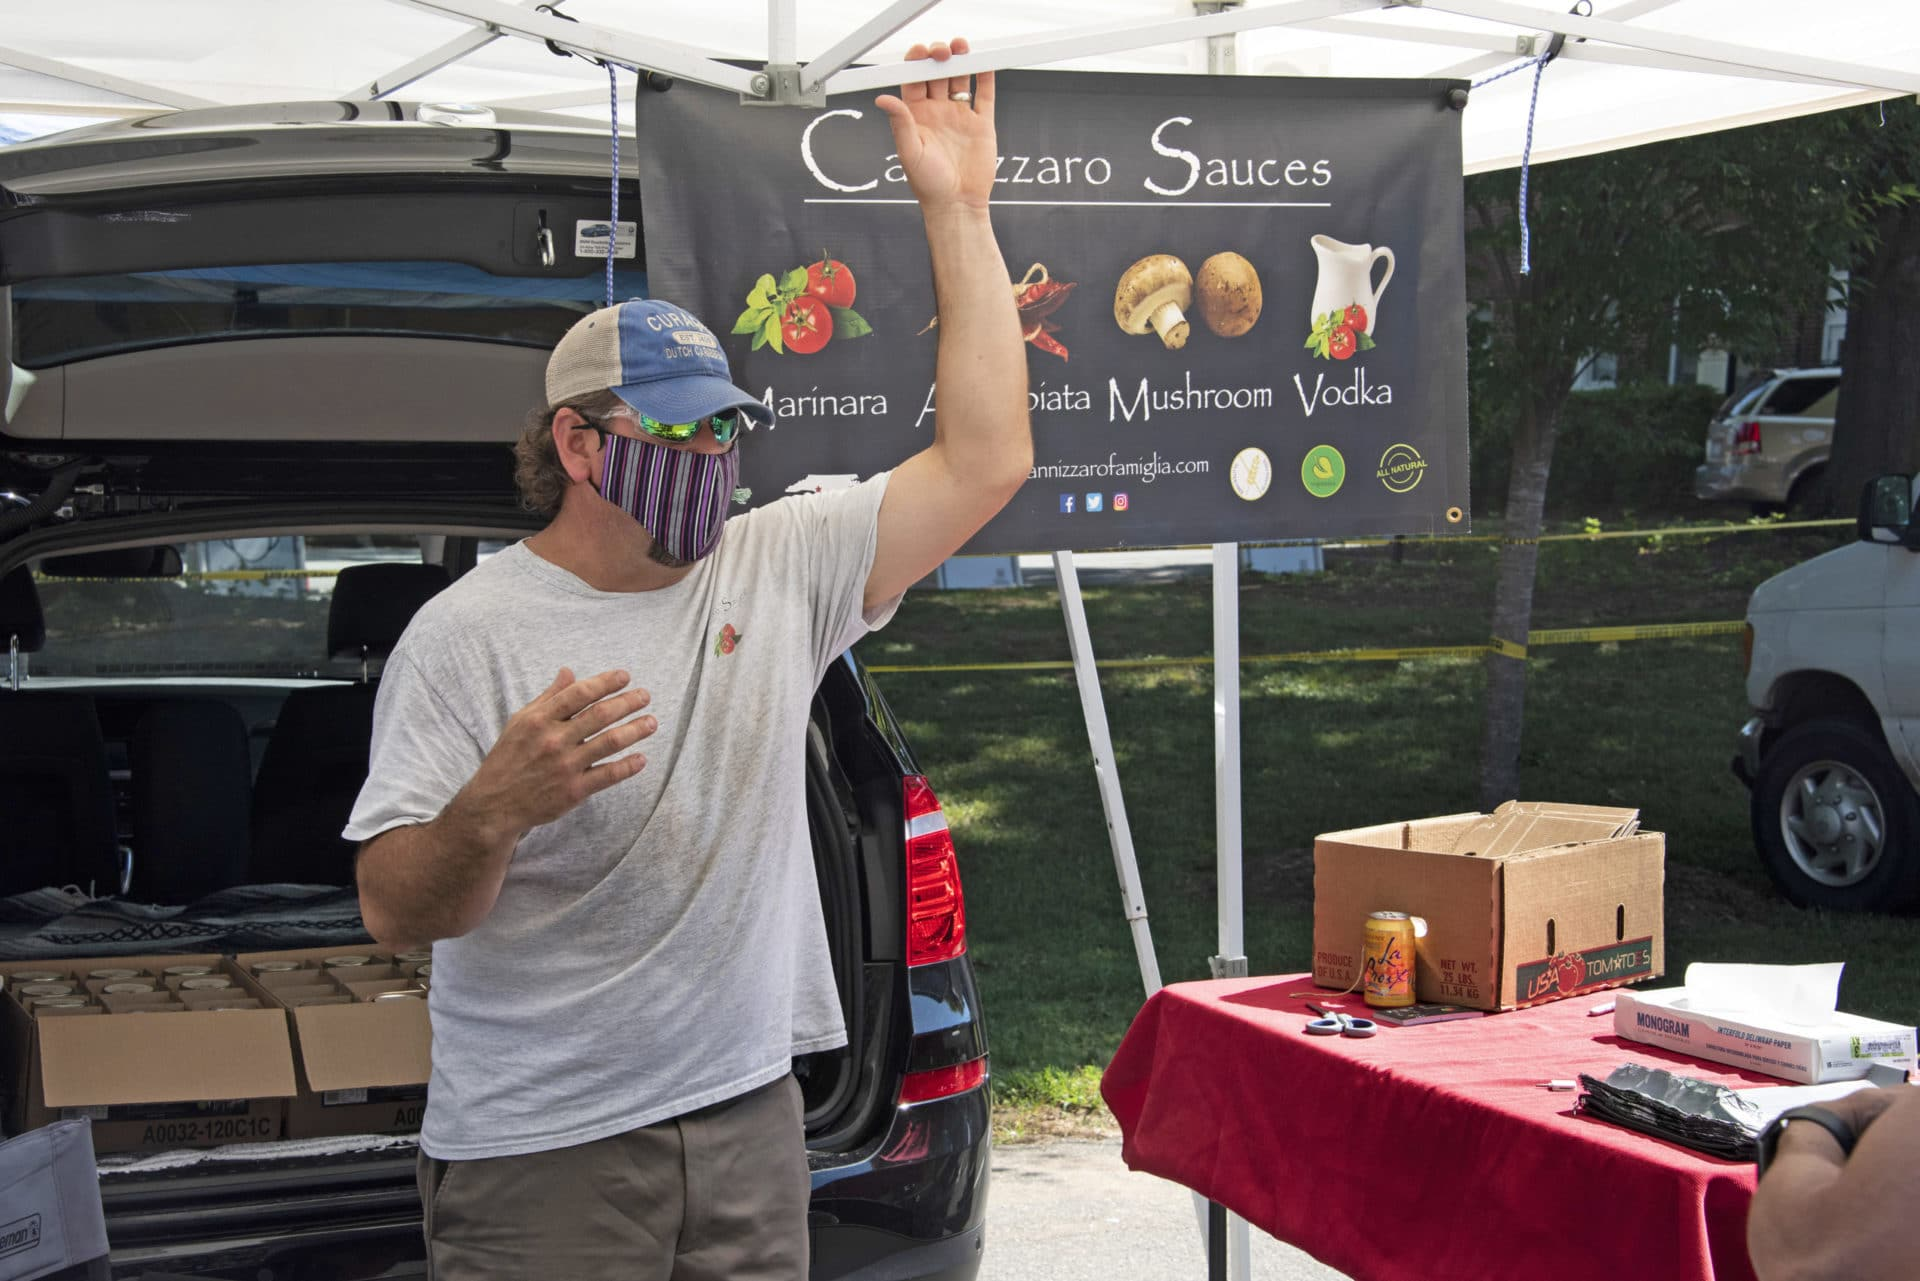 Cannizzaro Sauces offered a variety of authentic Italian sauces to shoppers.